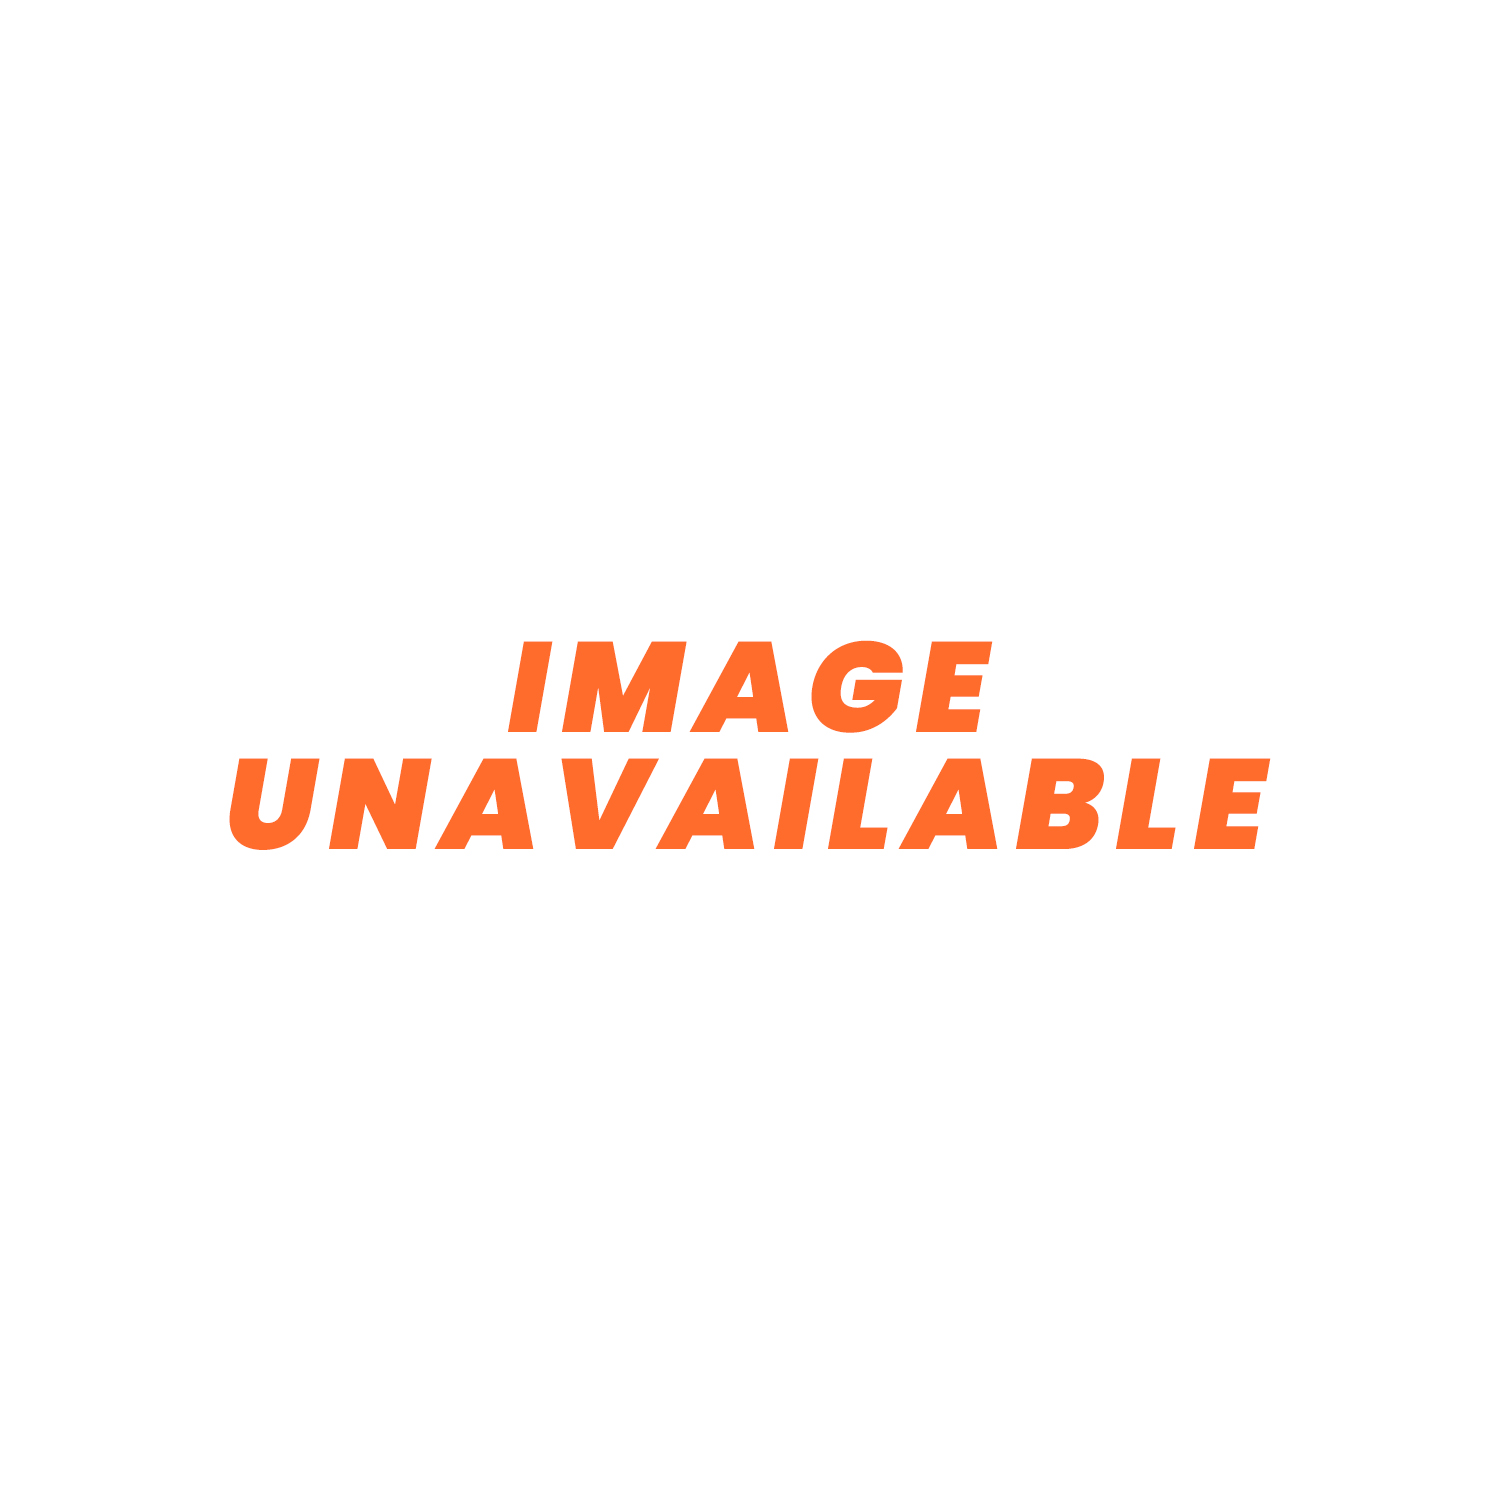 K20/K24 Timing Chain Tensioner Cover